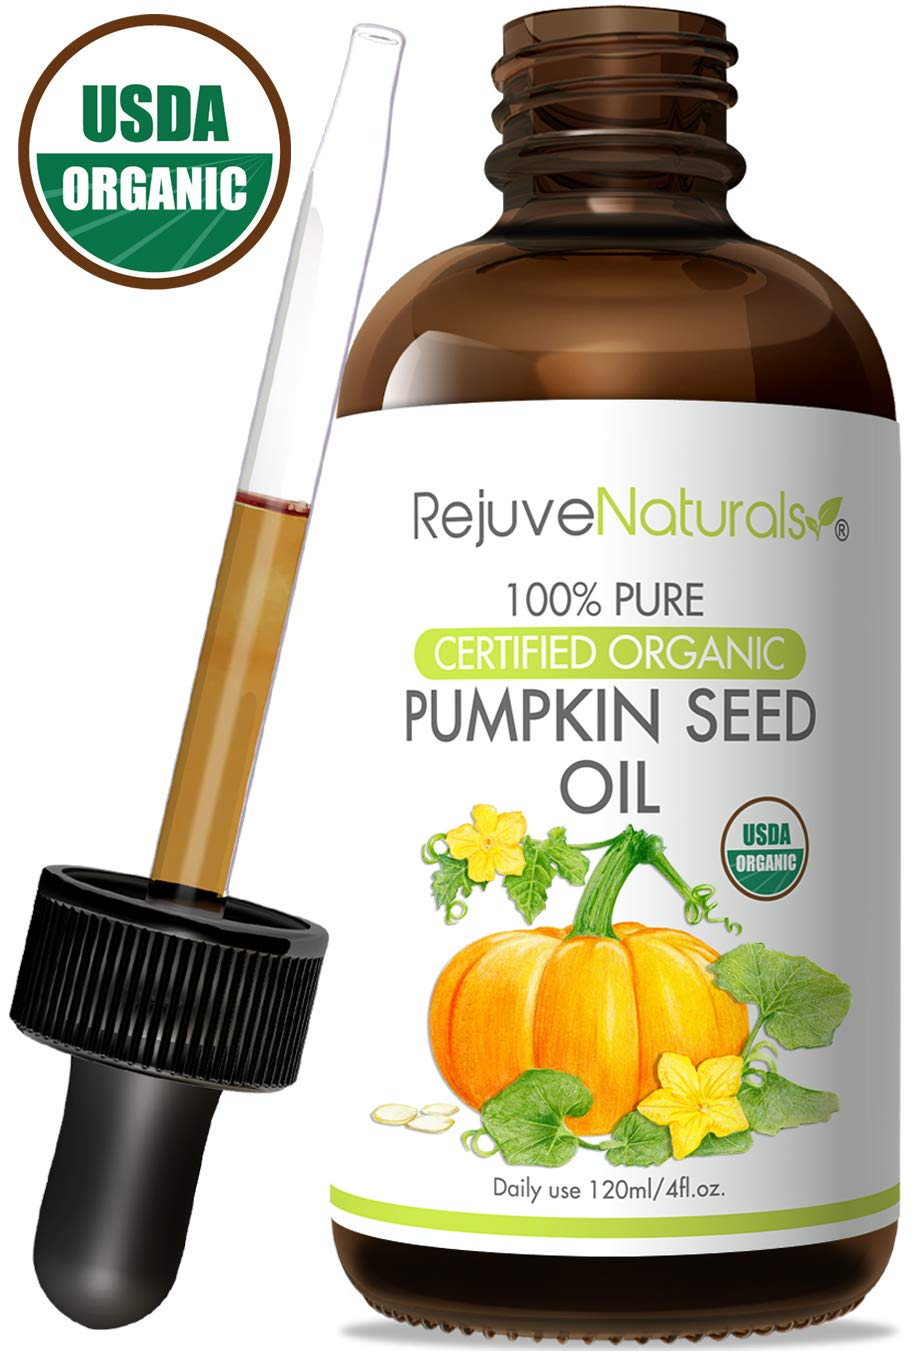 Organic Pumpkin Seed Oil (4oz) USDA Certified Organic, 100% Pure, Cold Pressed. Boost Hair Growth for Eyelashes, Eyebrows & Hair. Overactive Bladder Control for Men & Women. Skin Moisturizer by RejuveNaturals